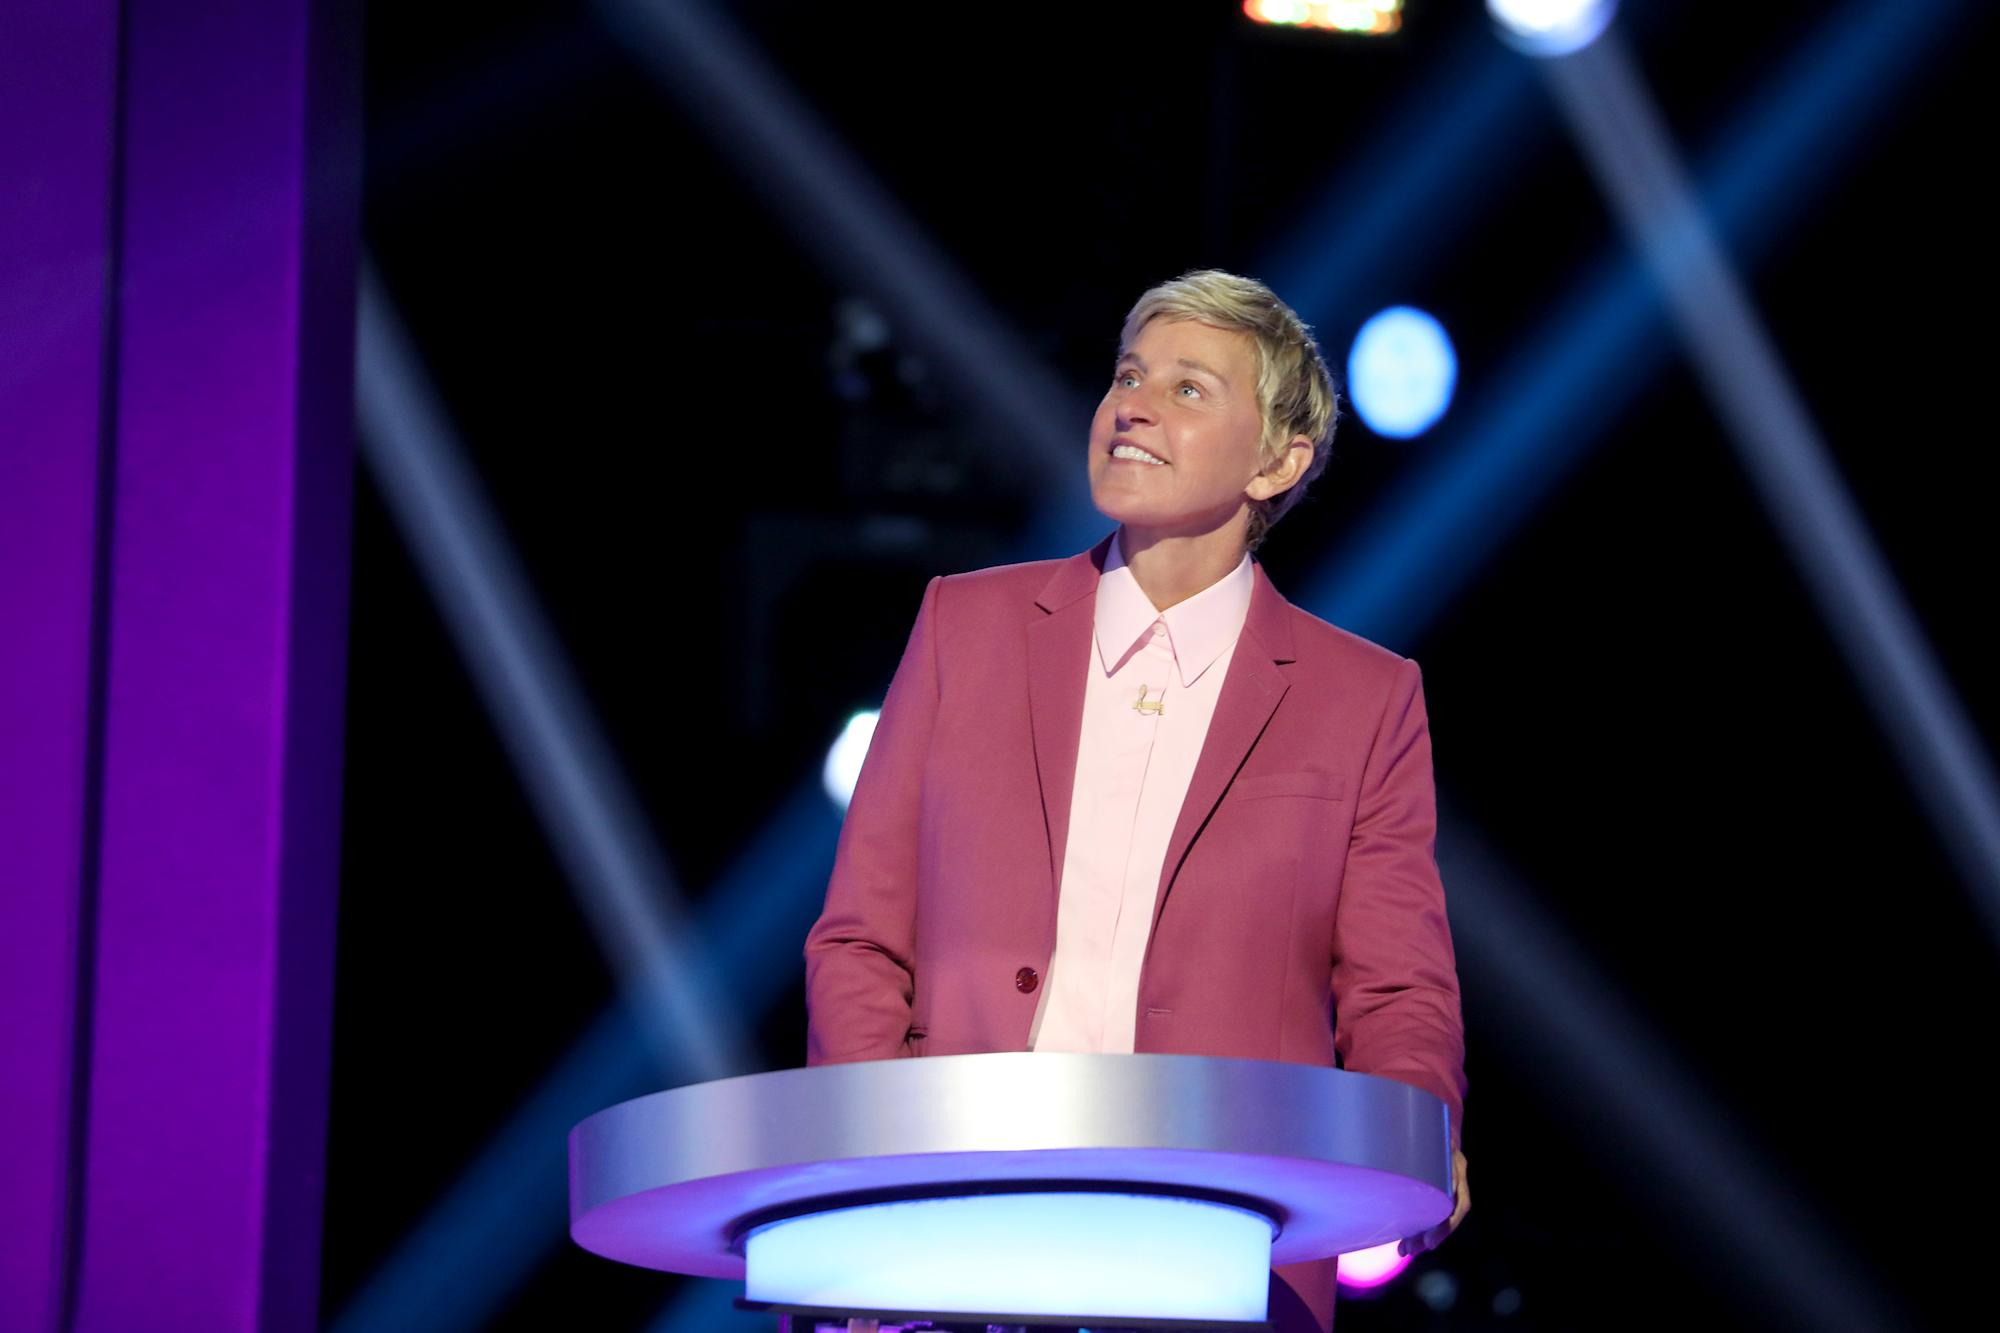 What 'The Ellen Show's' exit says about the future of TV, talk shows